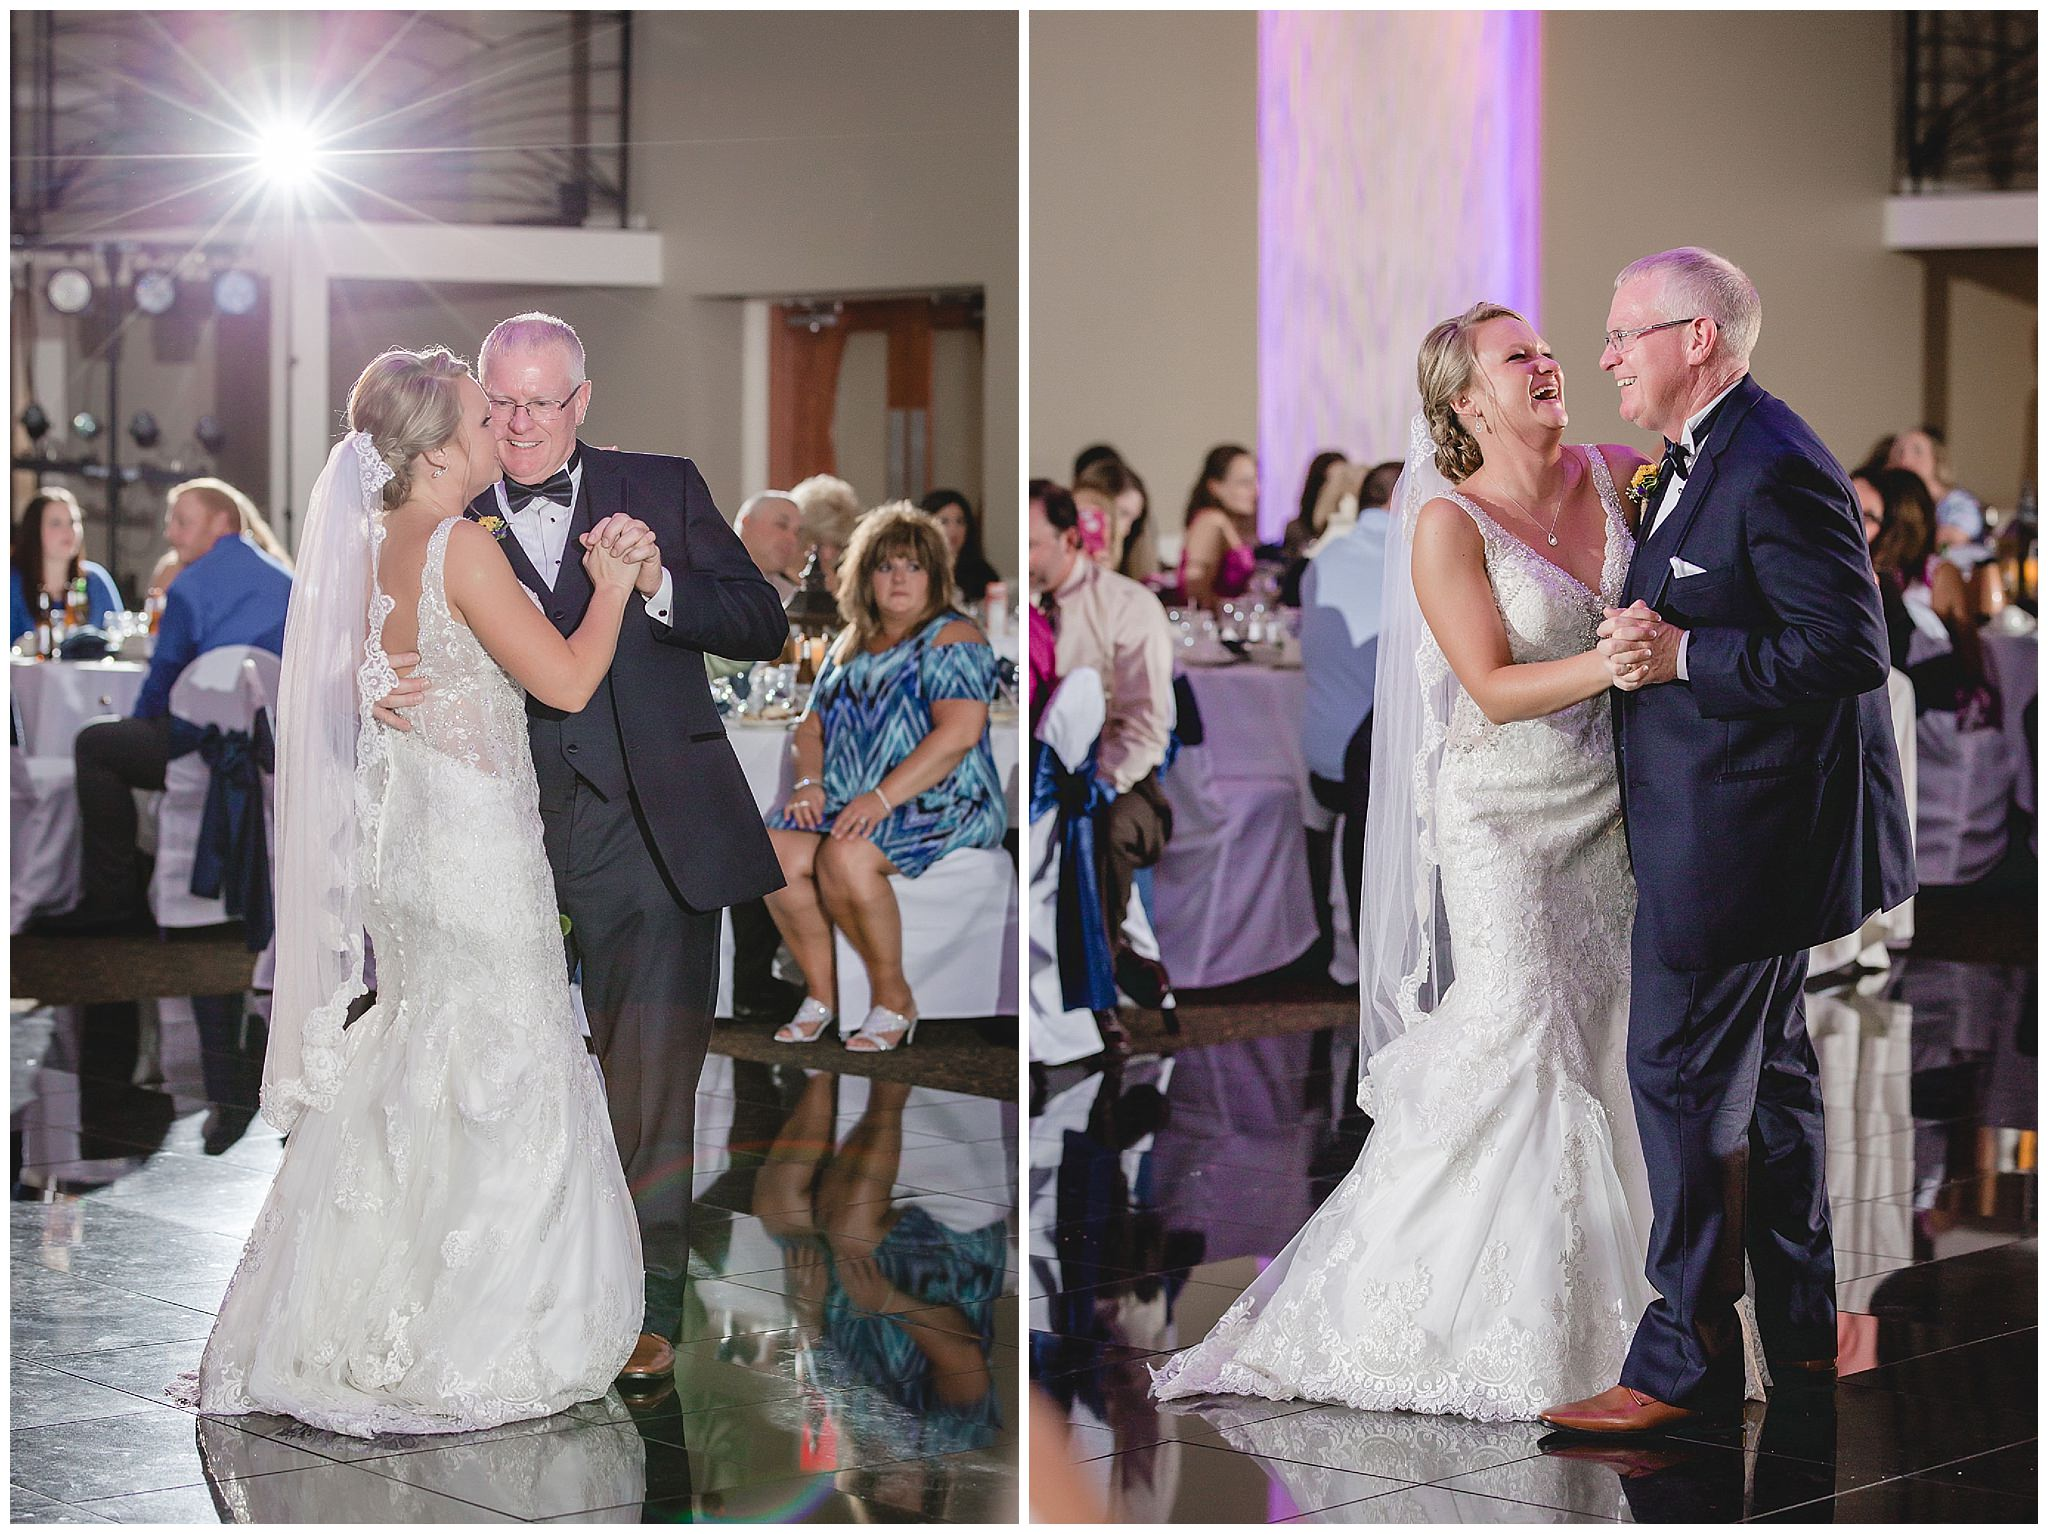 Bride dances with her father at a Fez wedding reception